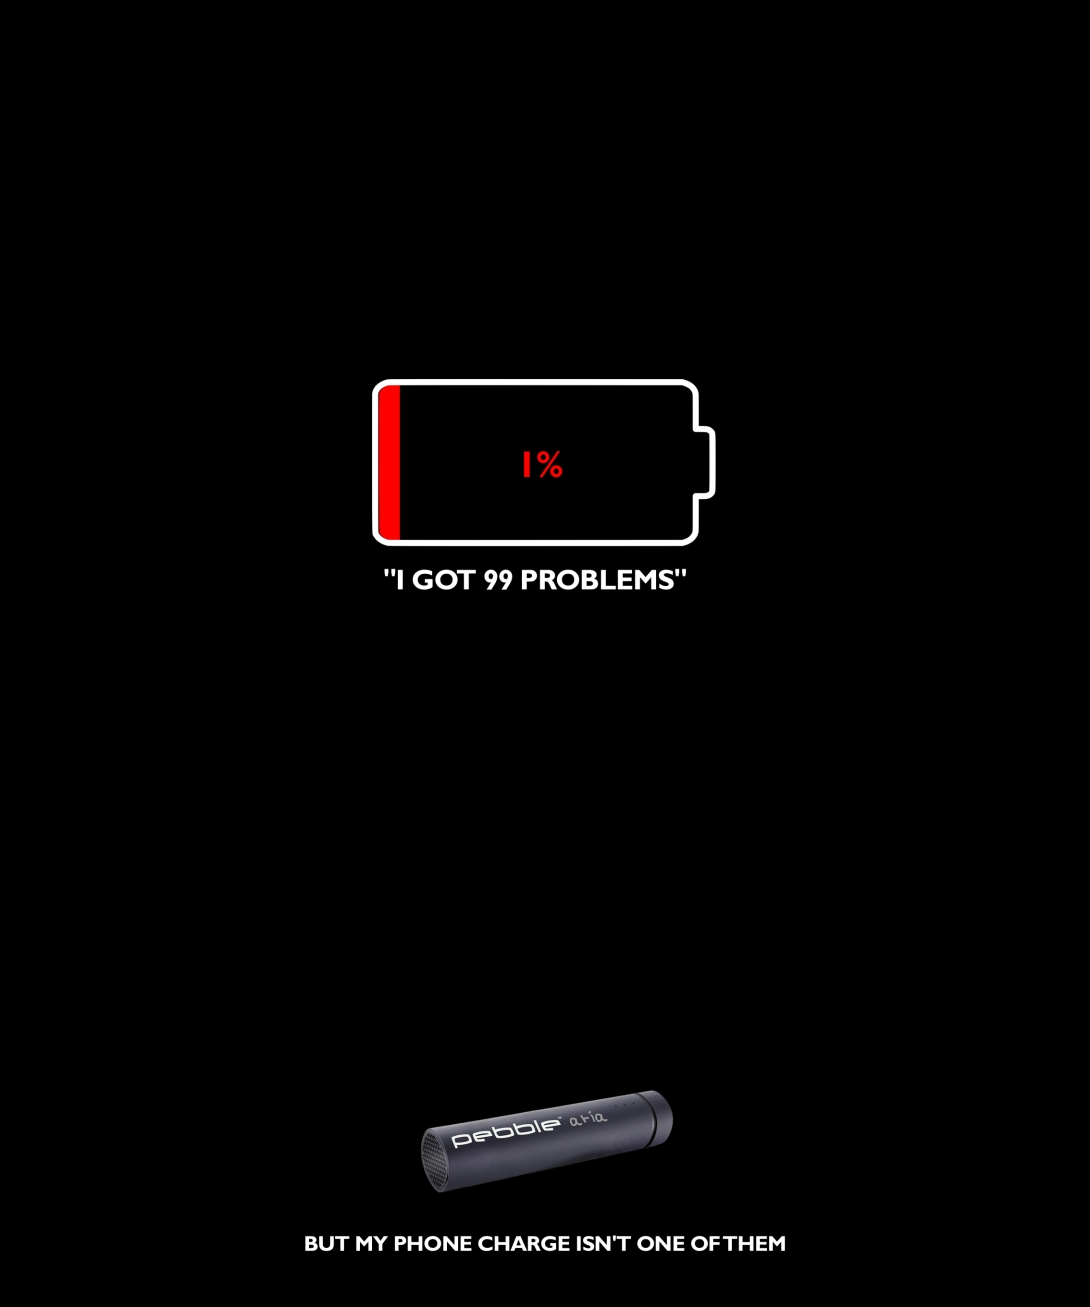 advertising concept for a mobile phone charger - i got 99 problems but my phone charge isn't one of them